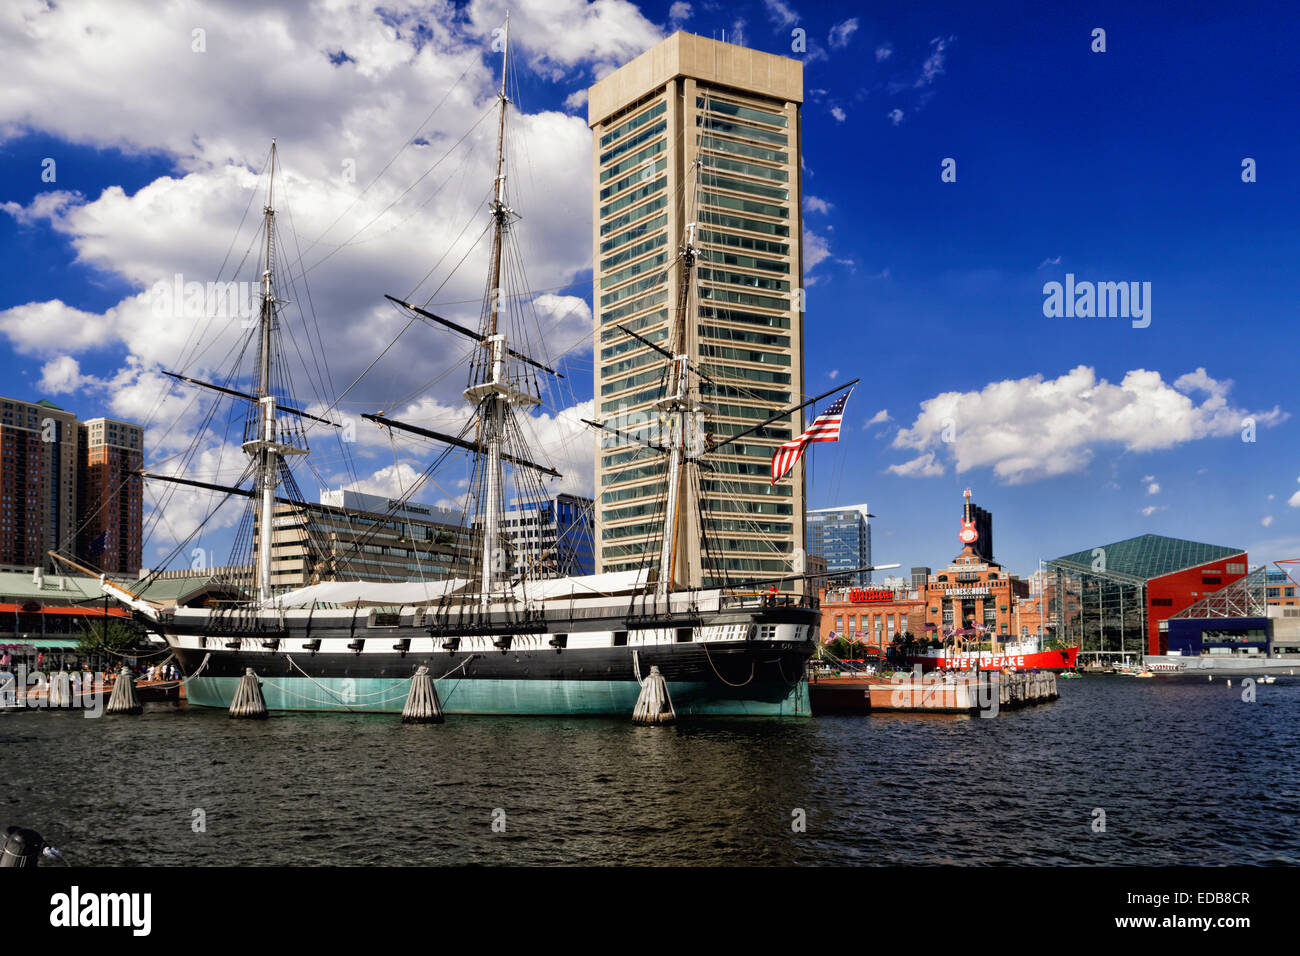 Low Angle View of the USS Constellation Historic Warship, Inner Harbor, Baltimore, Maryland - Stock Image